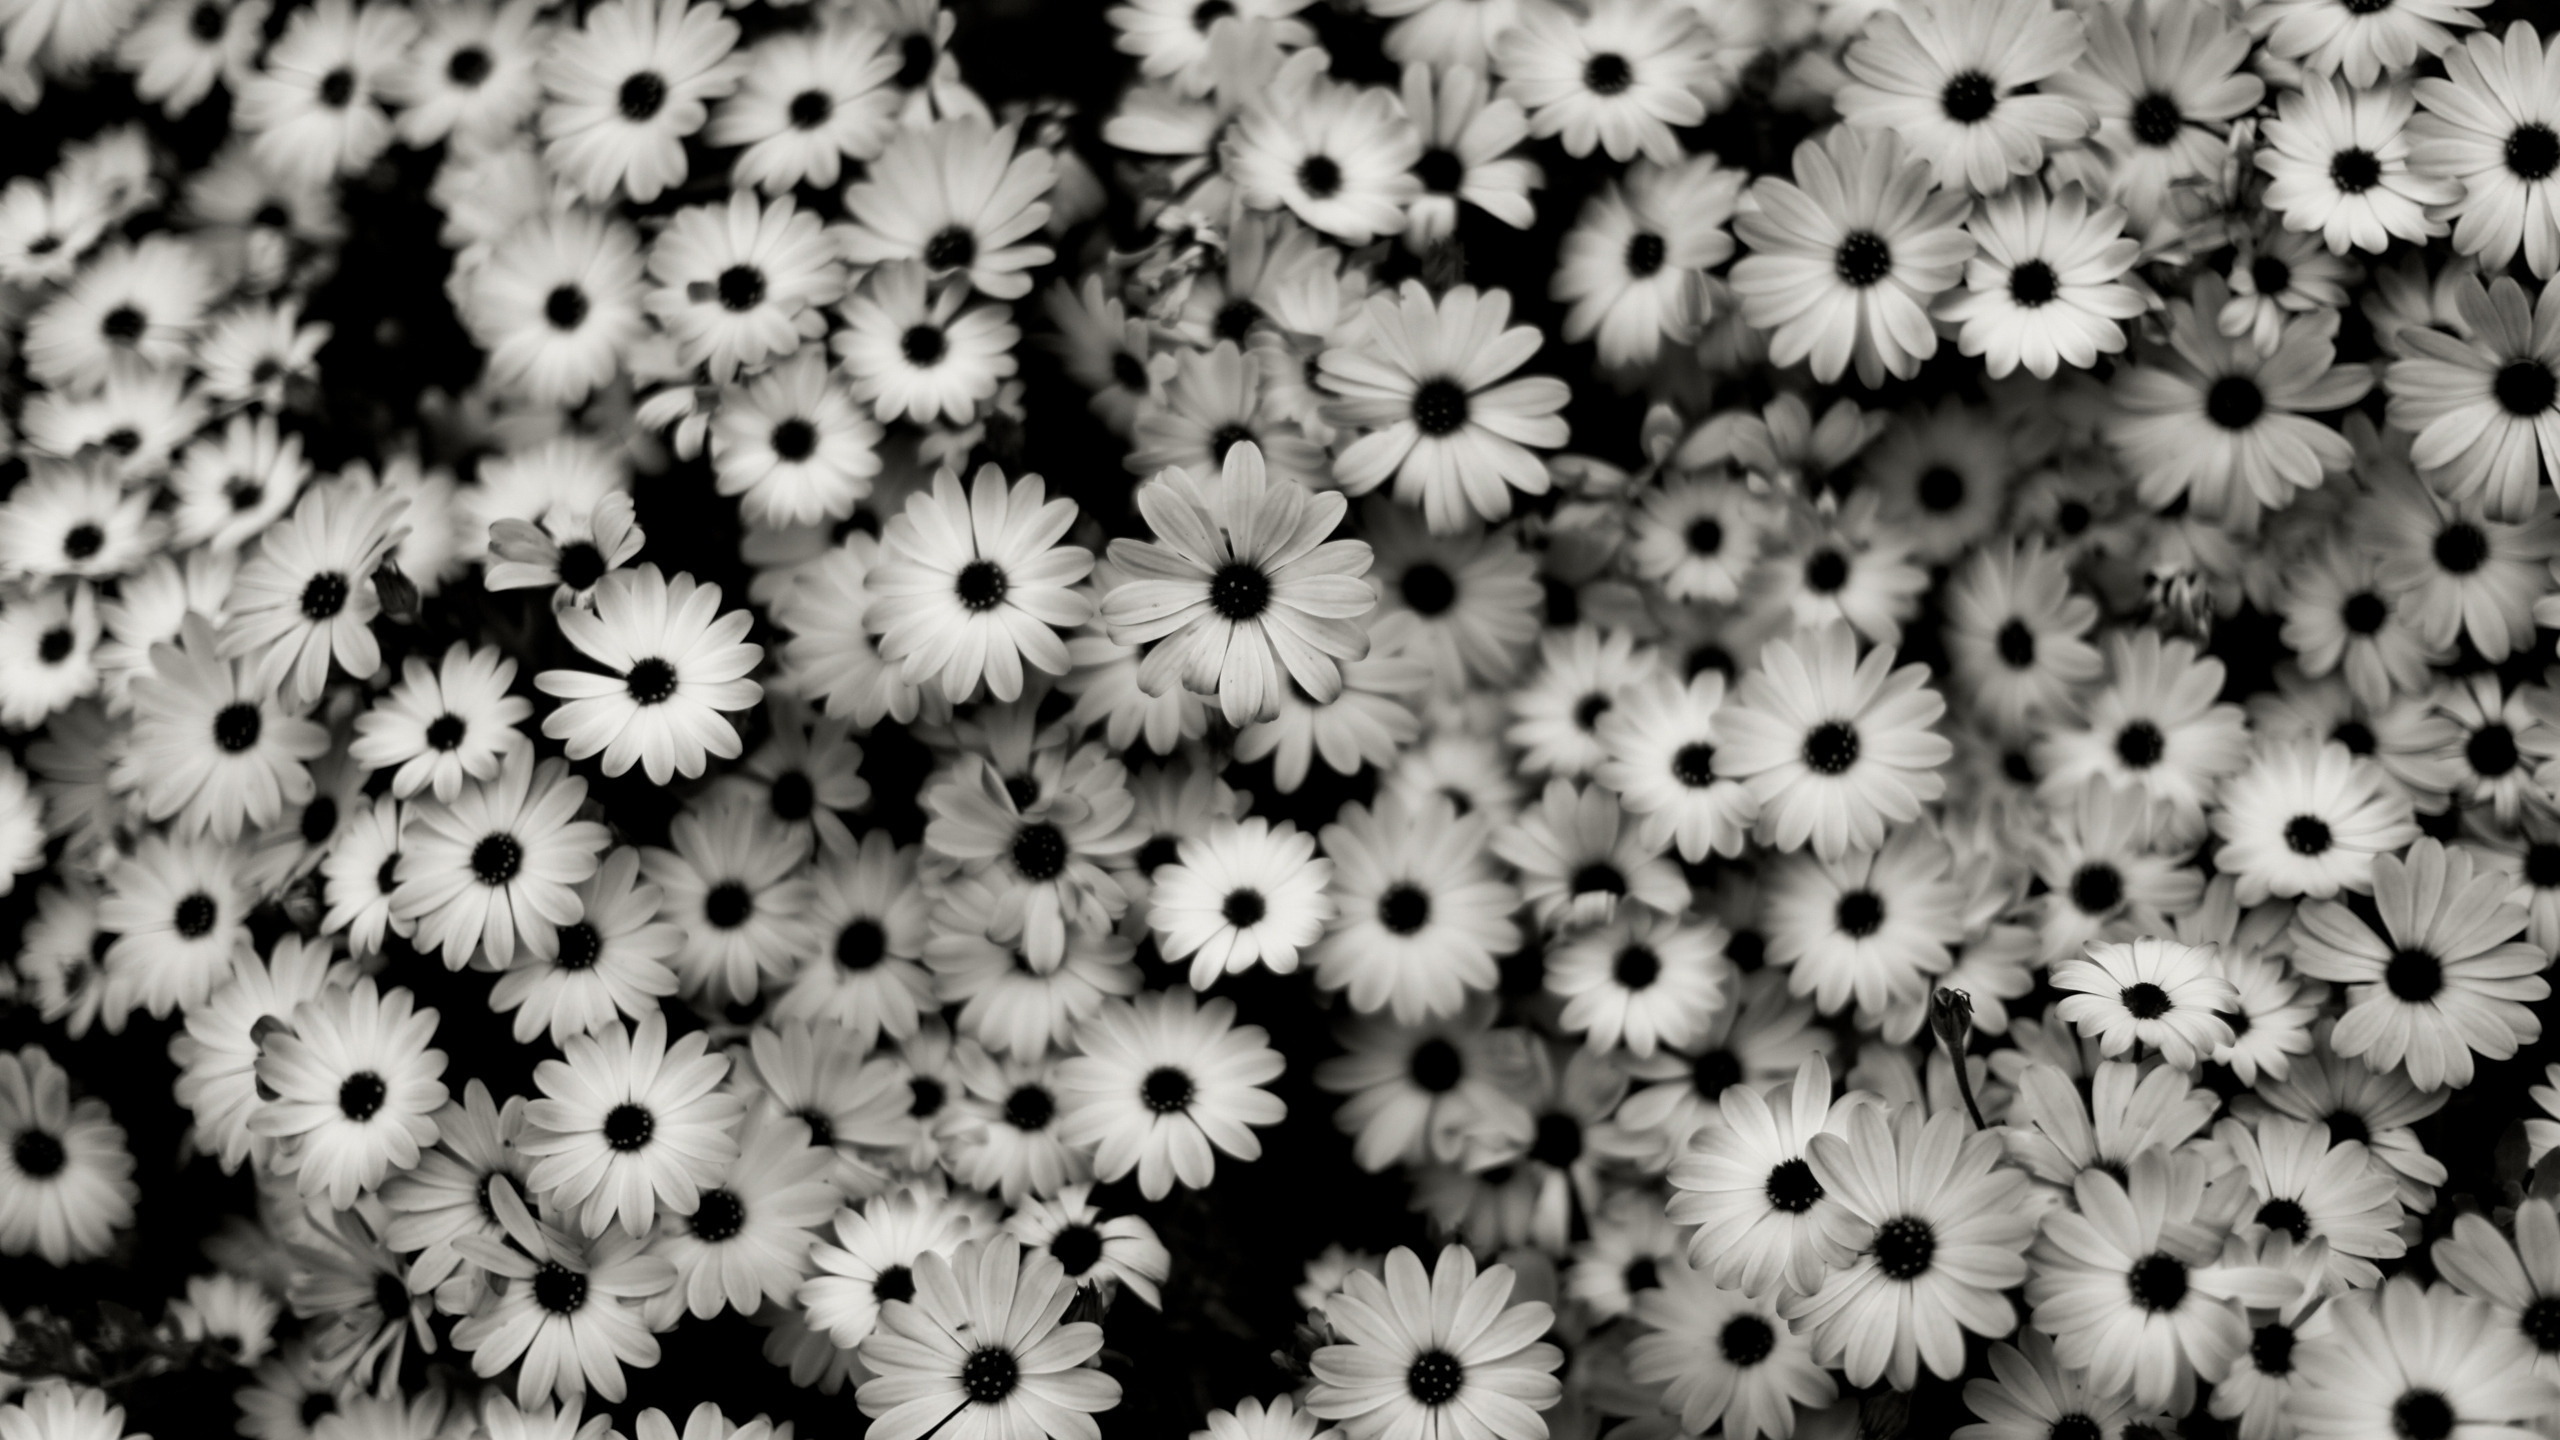 10 New Black And White Computer Backgrounds FULL HD 1080p For PC Background